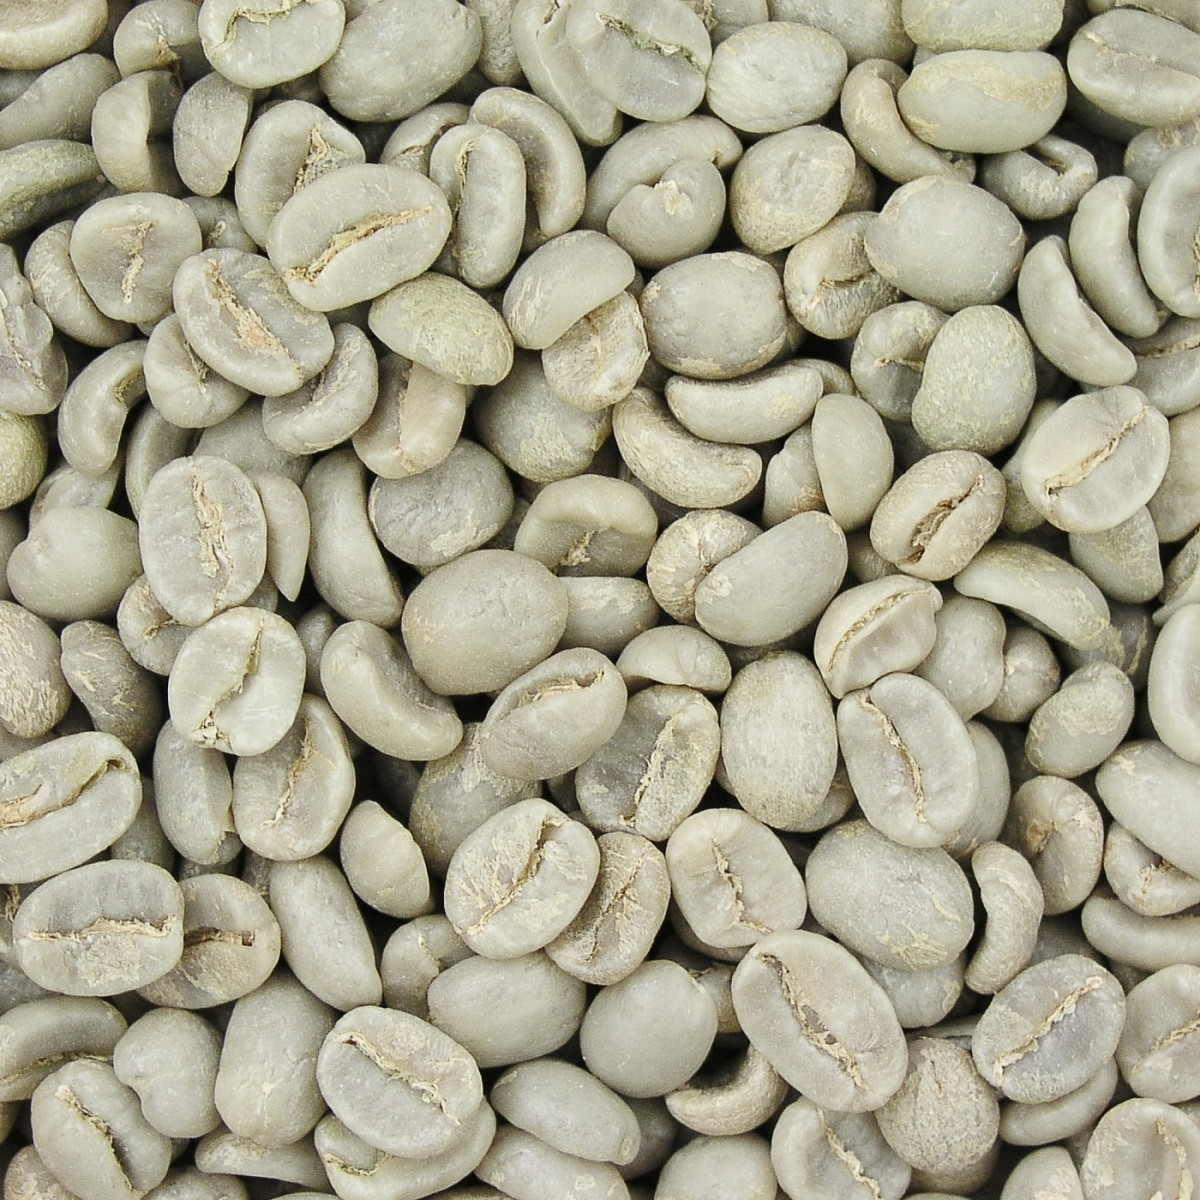 Green coffee beans seem to fight bacteria, but most of the relevant research has been done with roasted coffee.